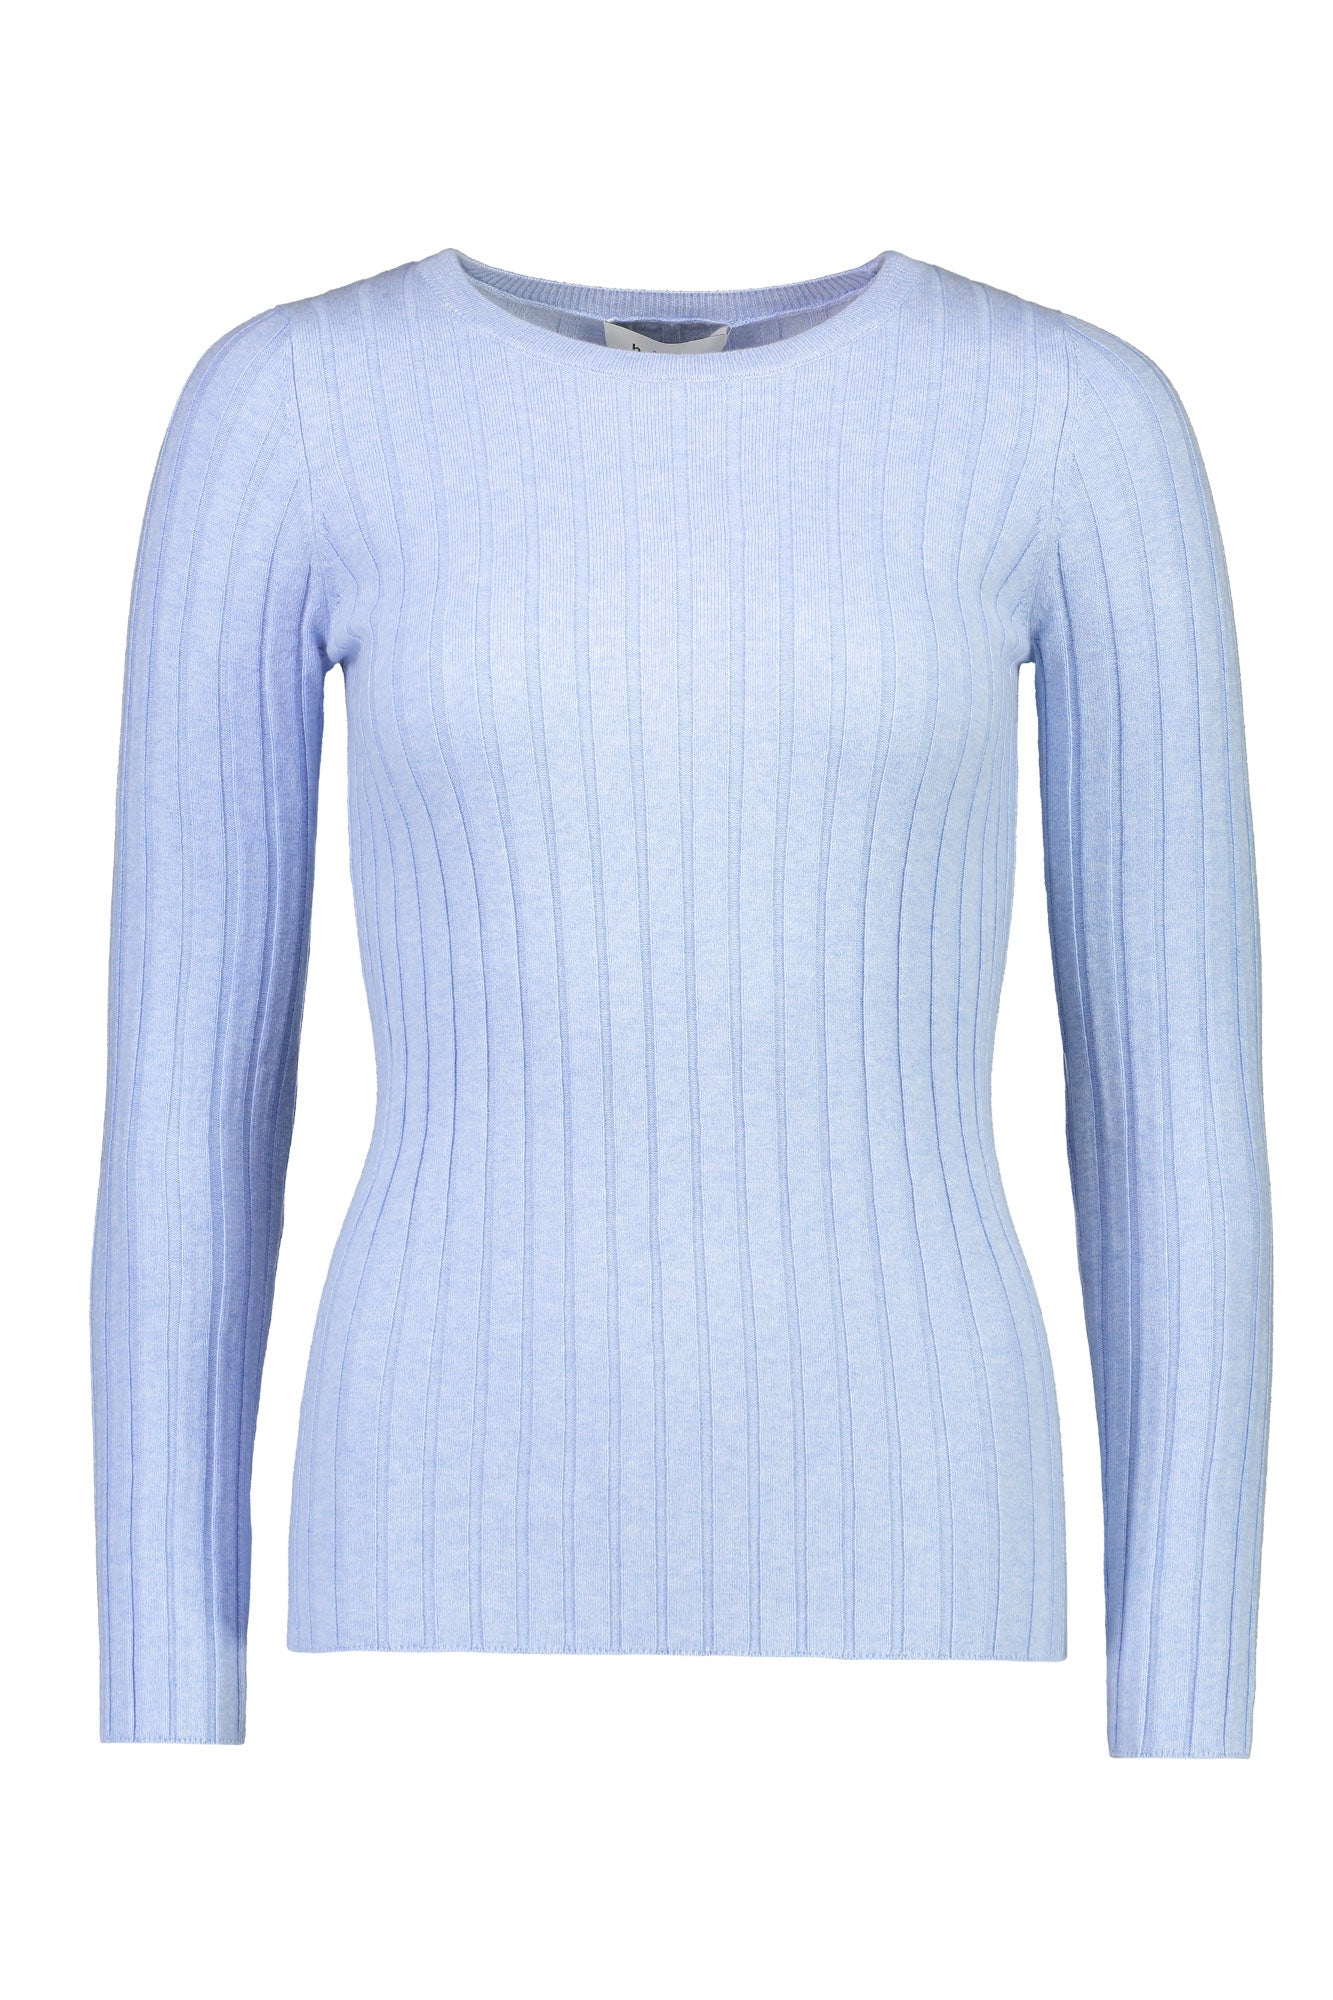 Layer Cake Knit in Sky Blue - hej hej